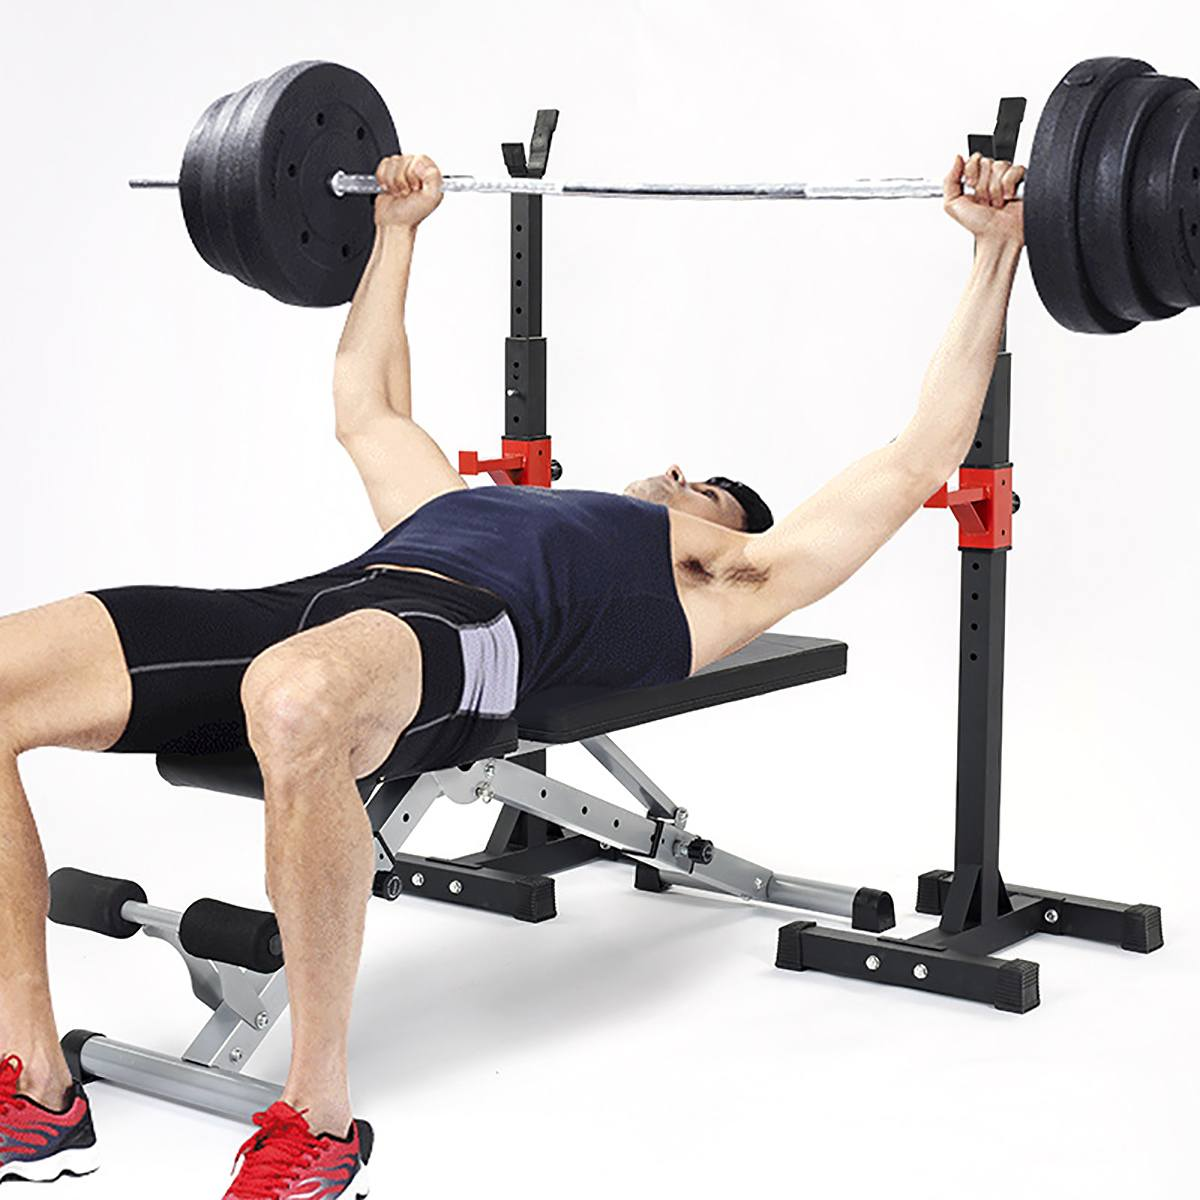 260KG Steel Weight Lifting Dumbbell Bar Adjustable Squat Rack Exercise Stand Home Fitness Barbells Bars Workout CZ